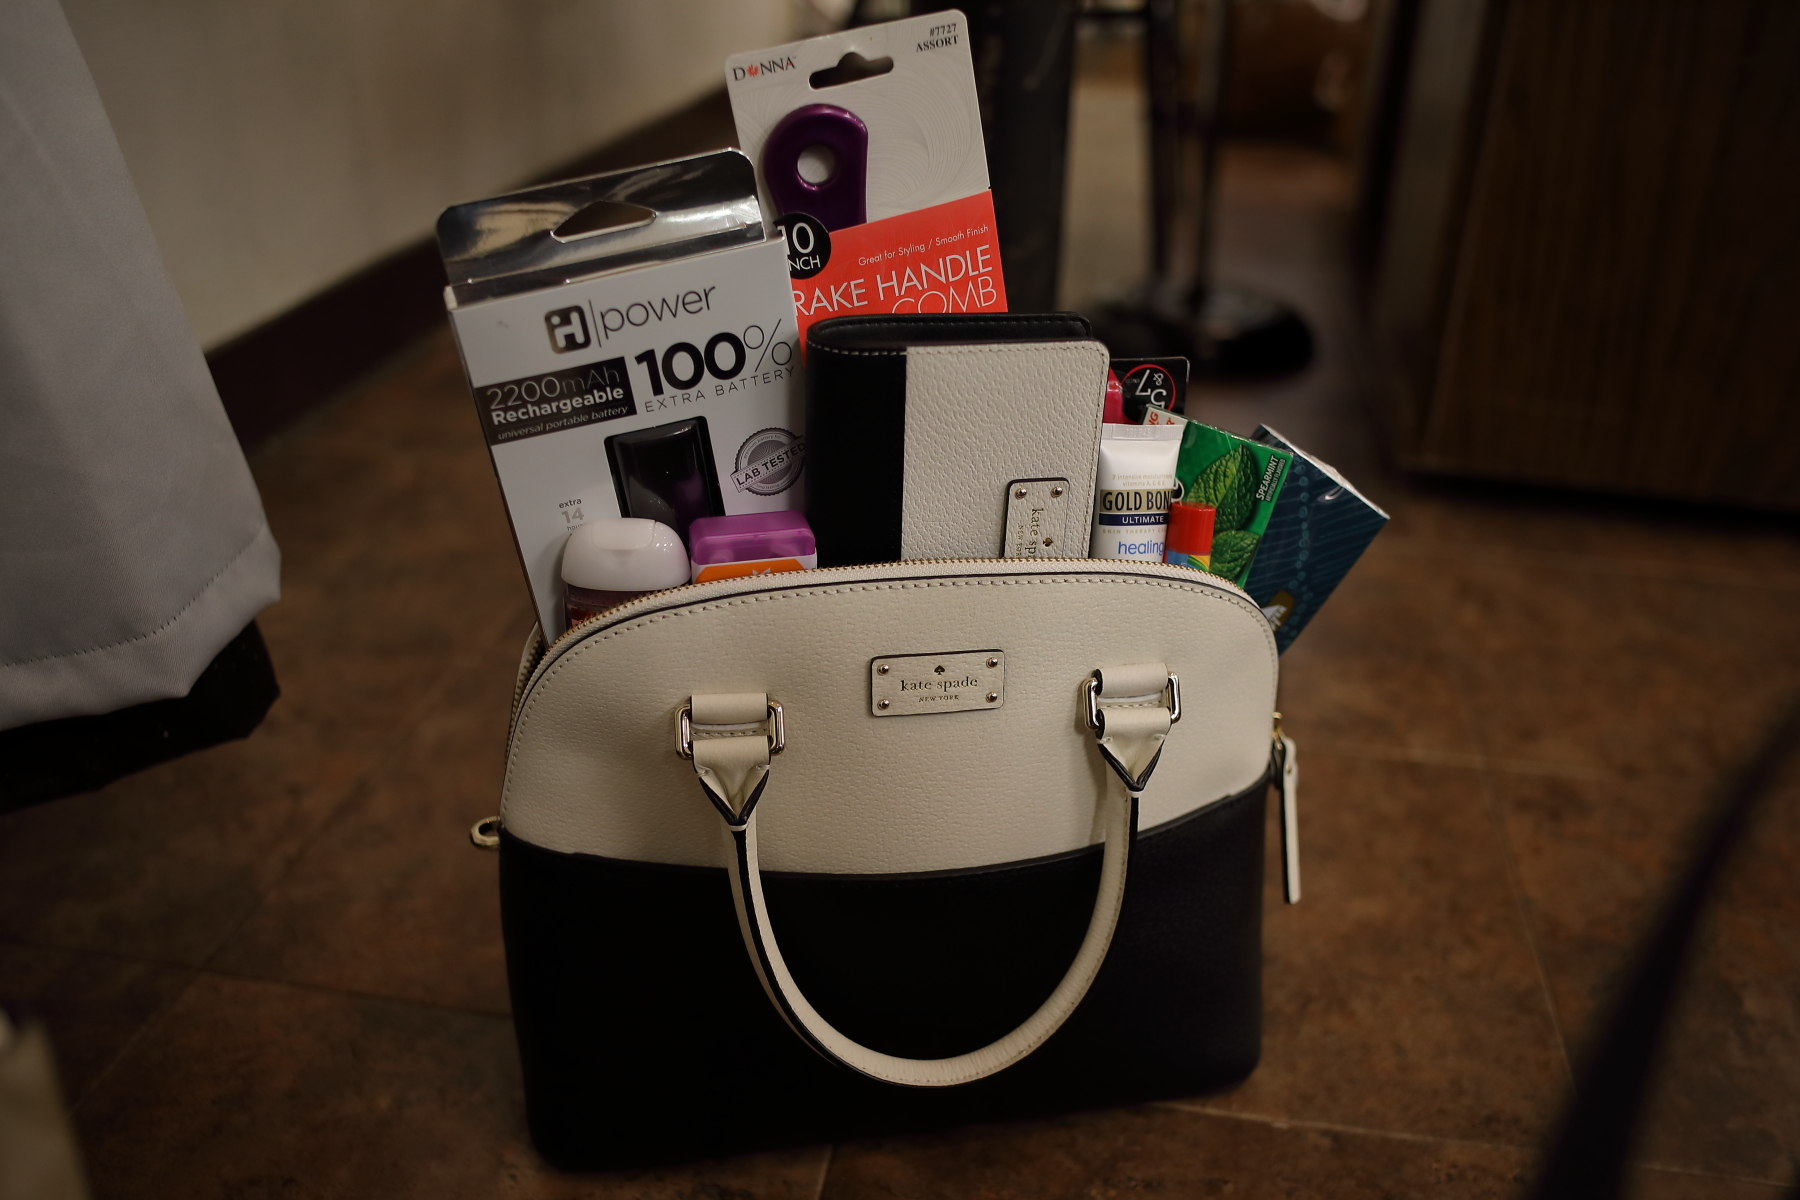 Black and white Kate Spade bag with portable powerbank, wallet, and personal care items such as lotion, comb, and gum.